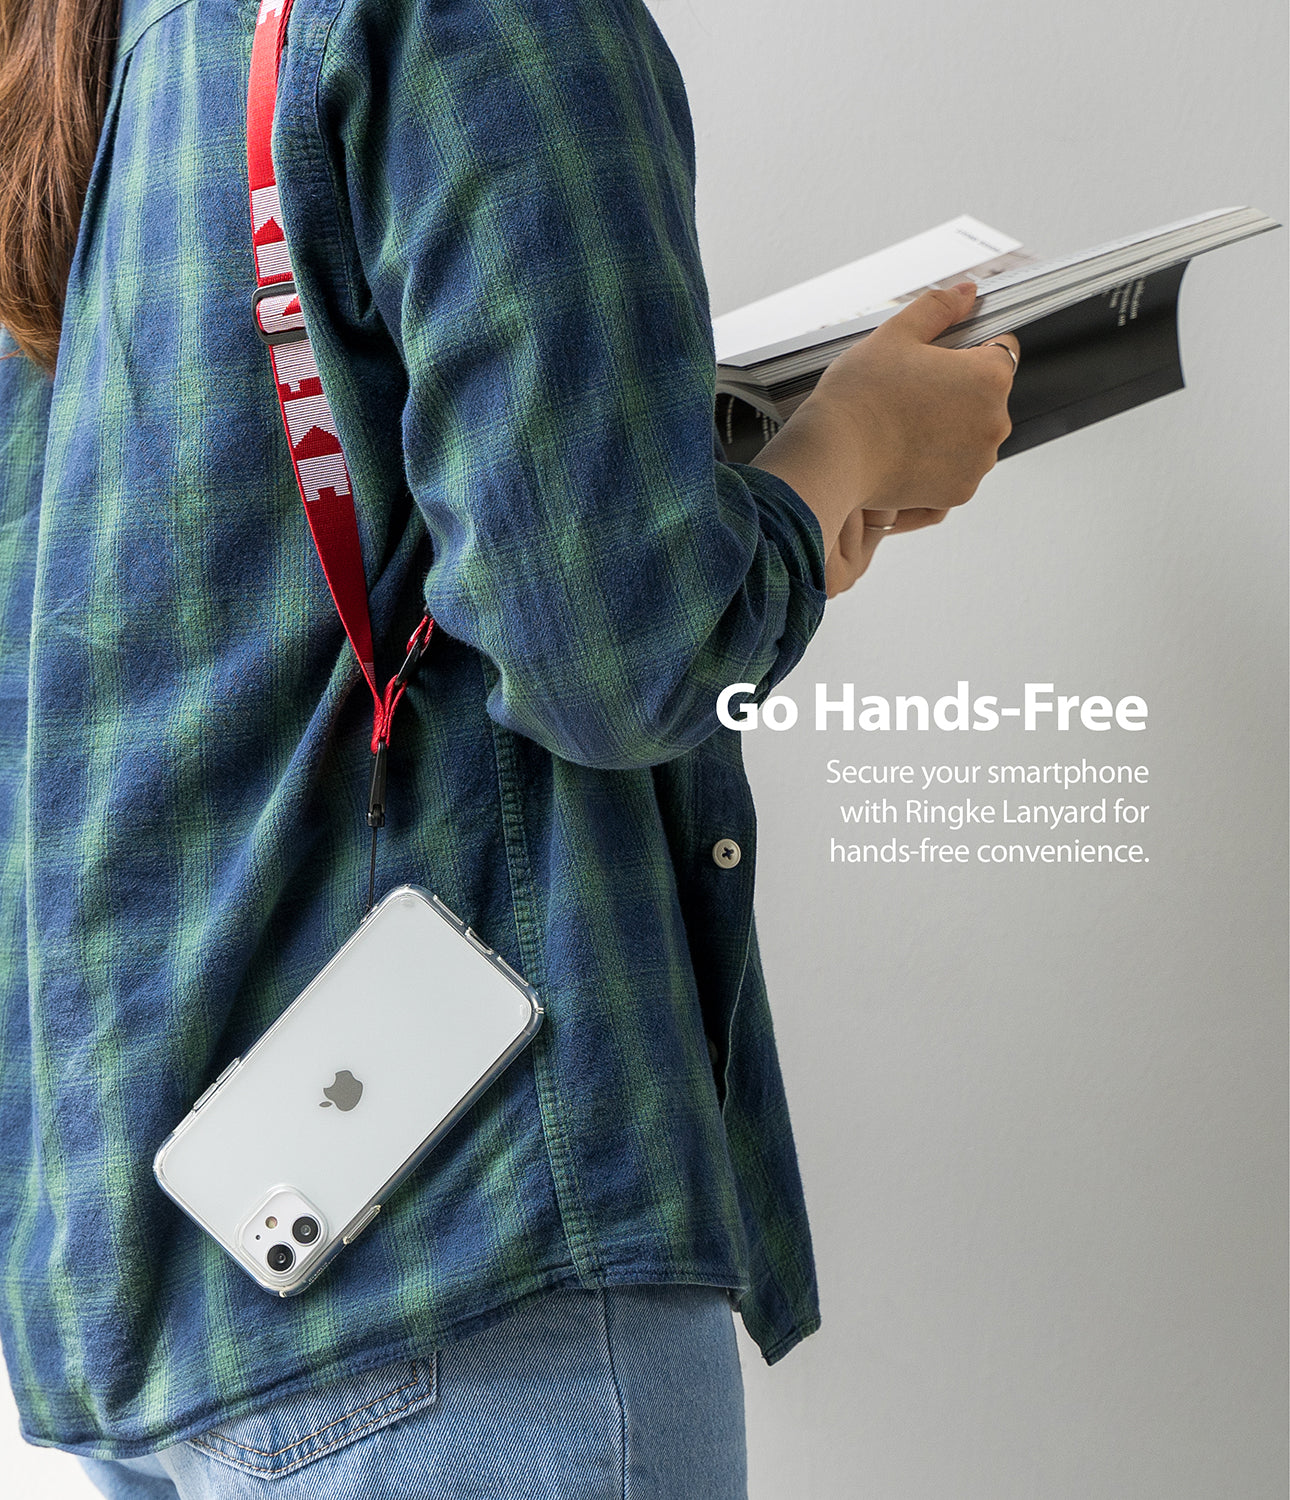 secure your smart devices with ringke lanyard for hands-free convenience